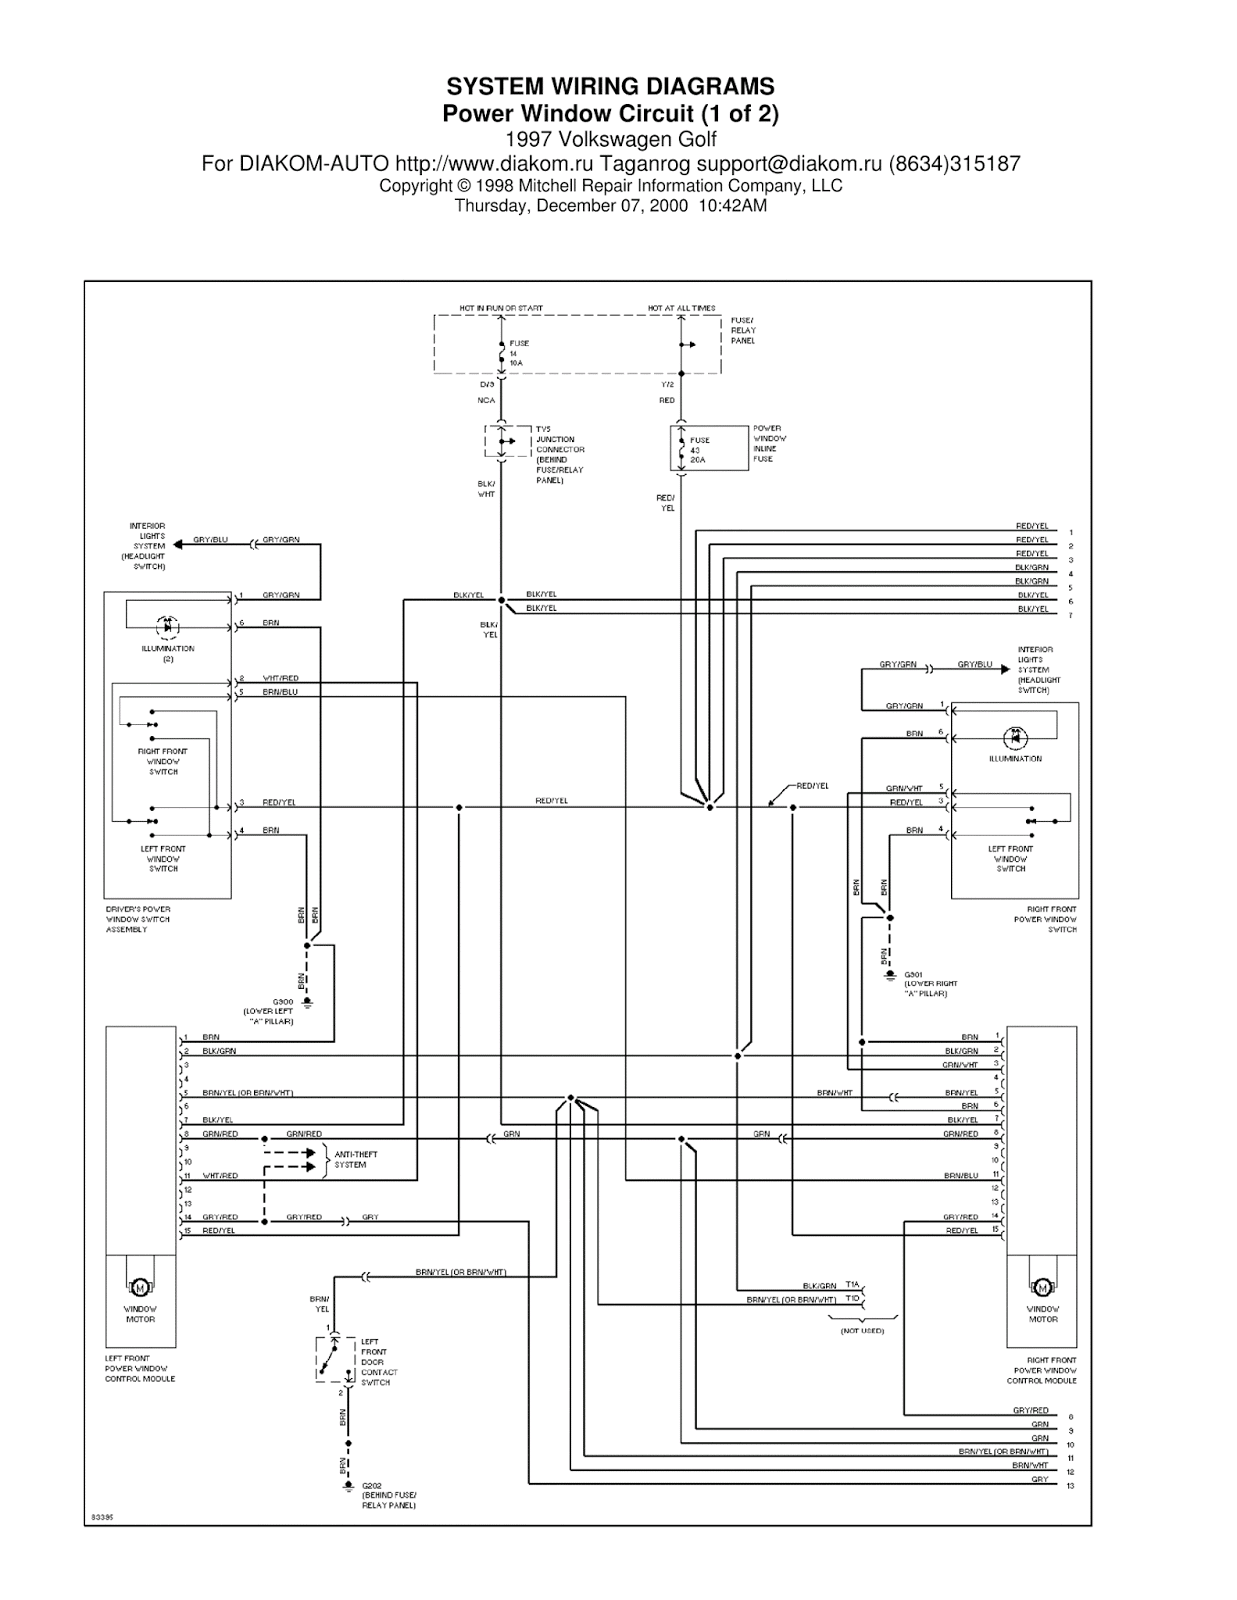 [TVUY_2095] 2005 Gti Wiring Diagram Diagram Database